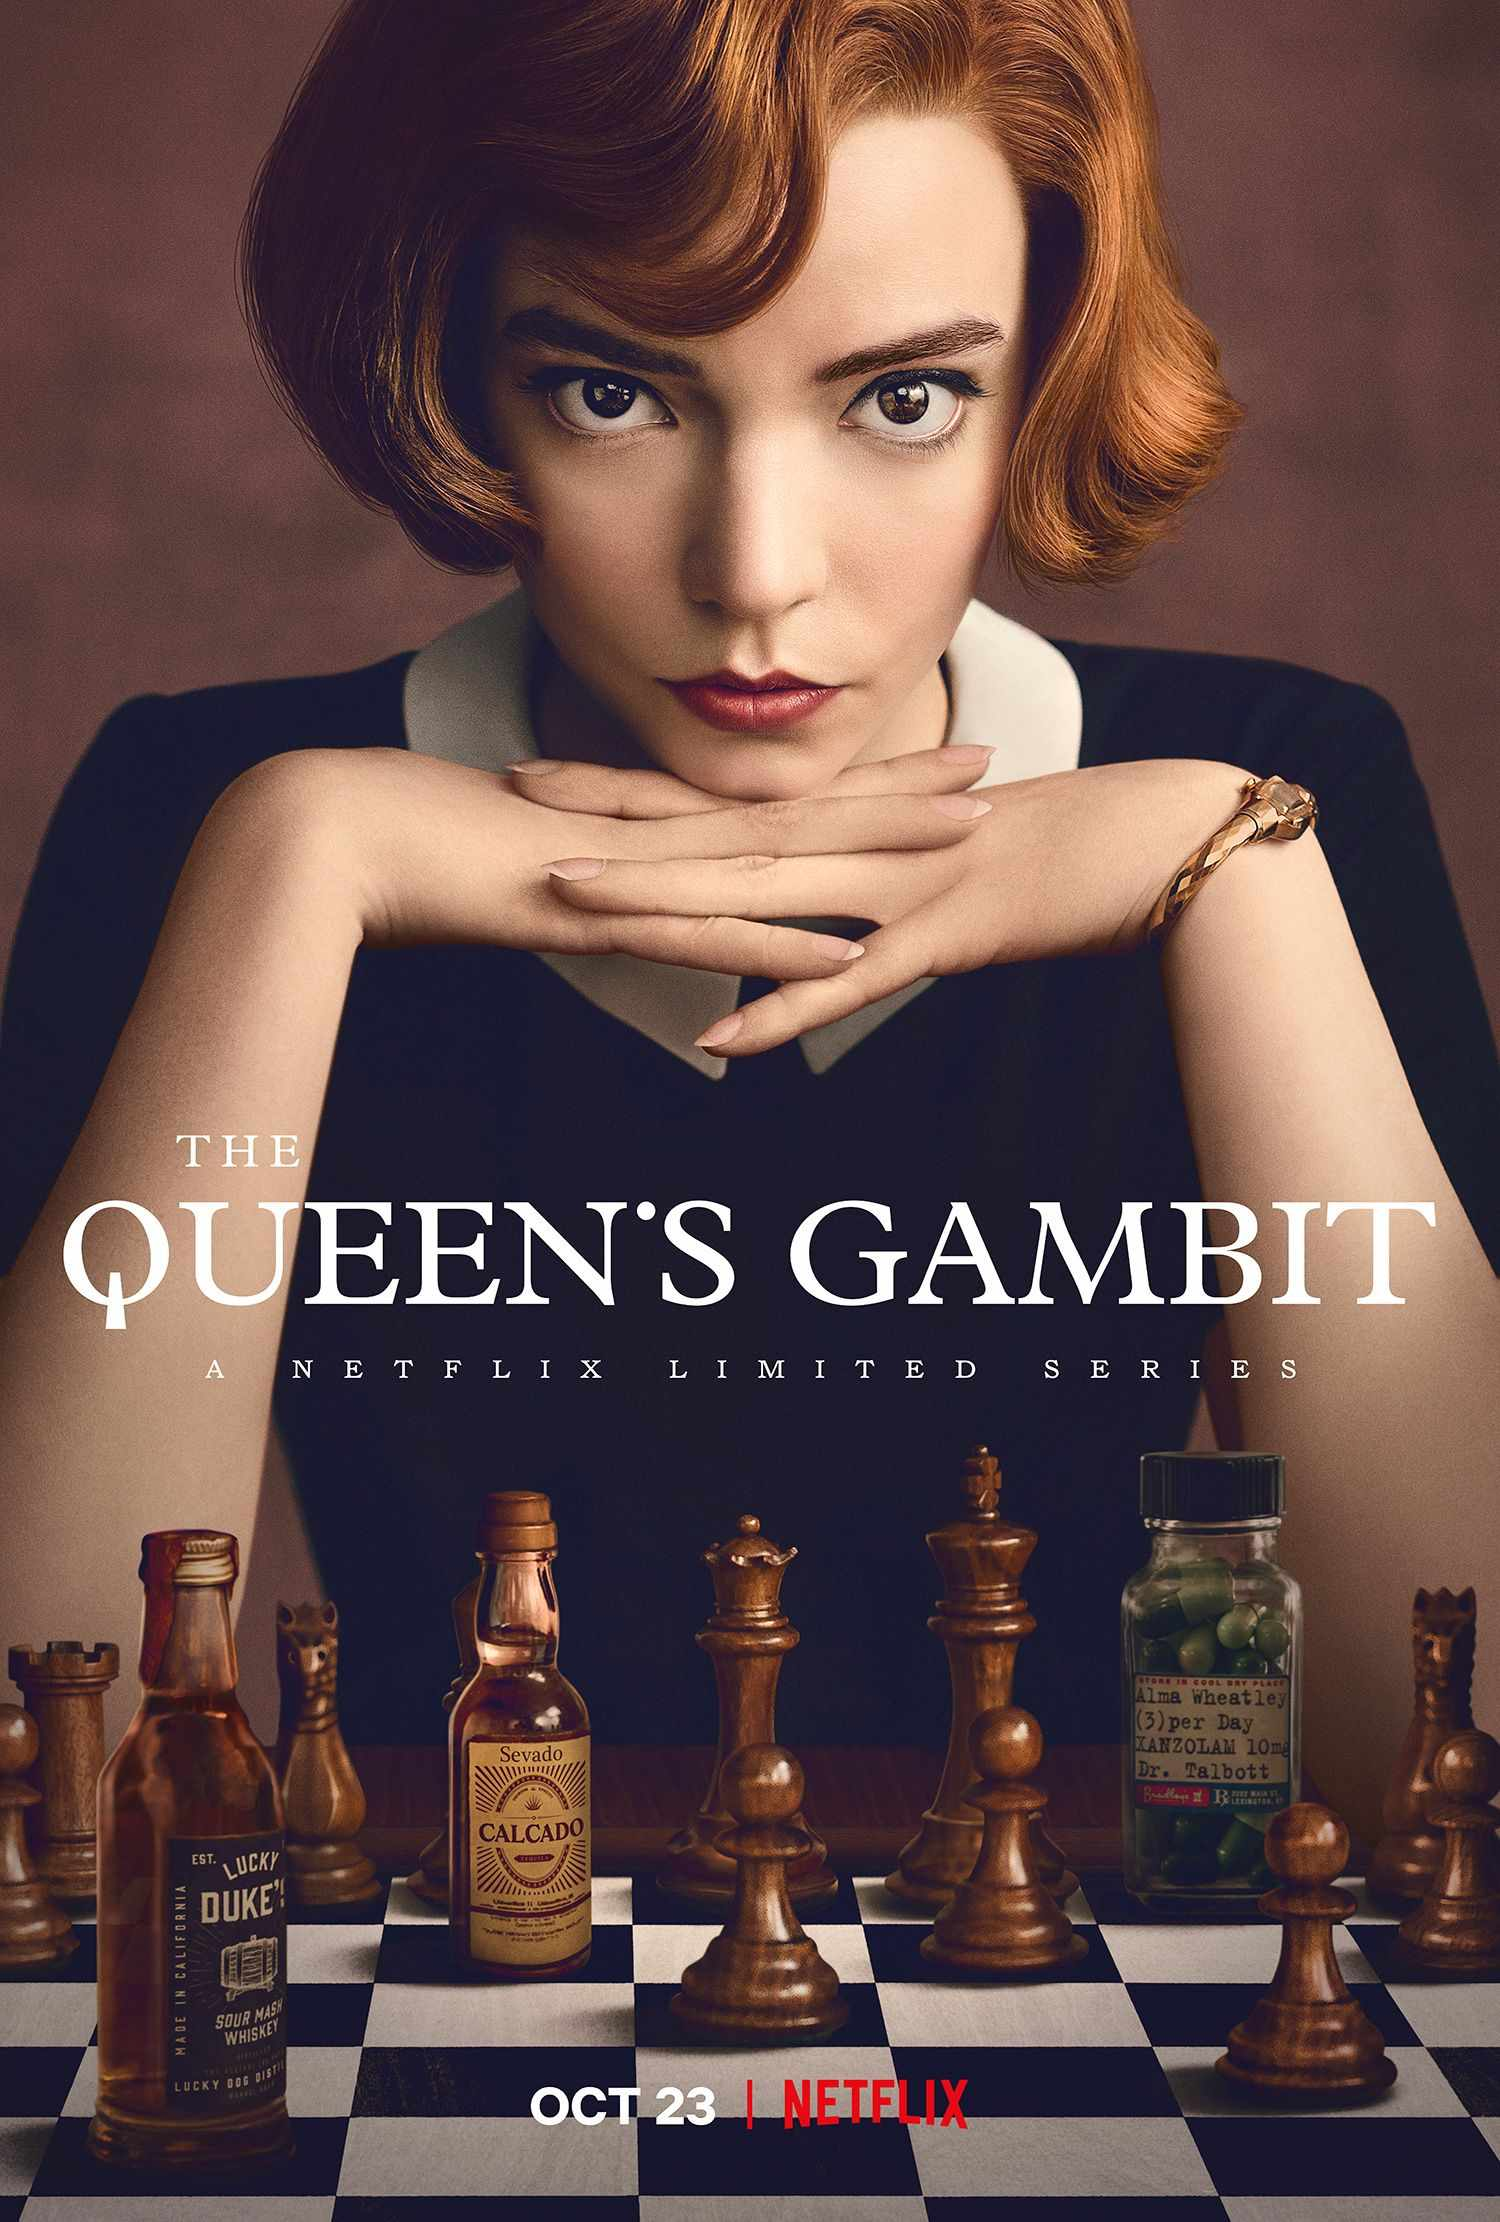 The Queen's Gambit: Netflix Adaptation Gets Official Trailer, Poster |  Collider